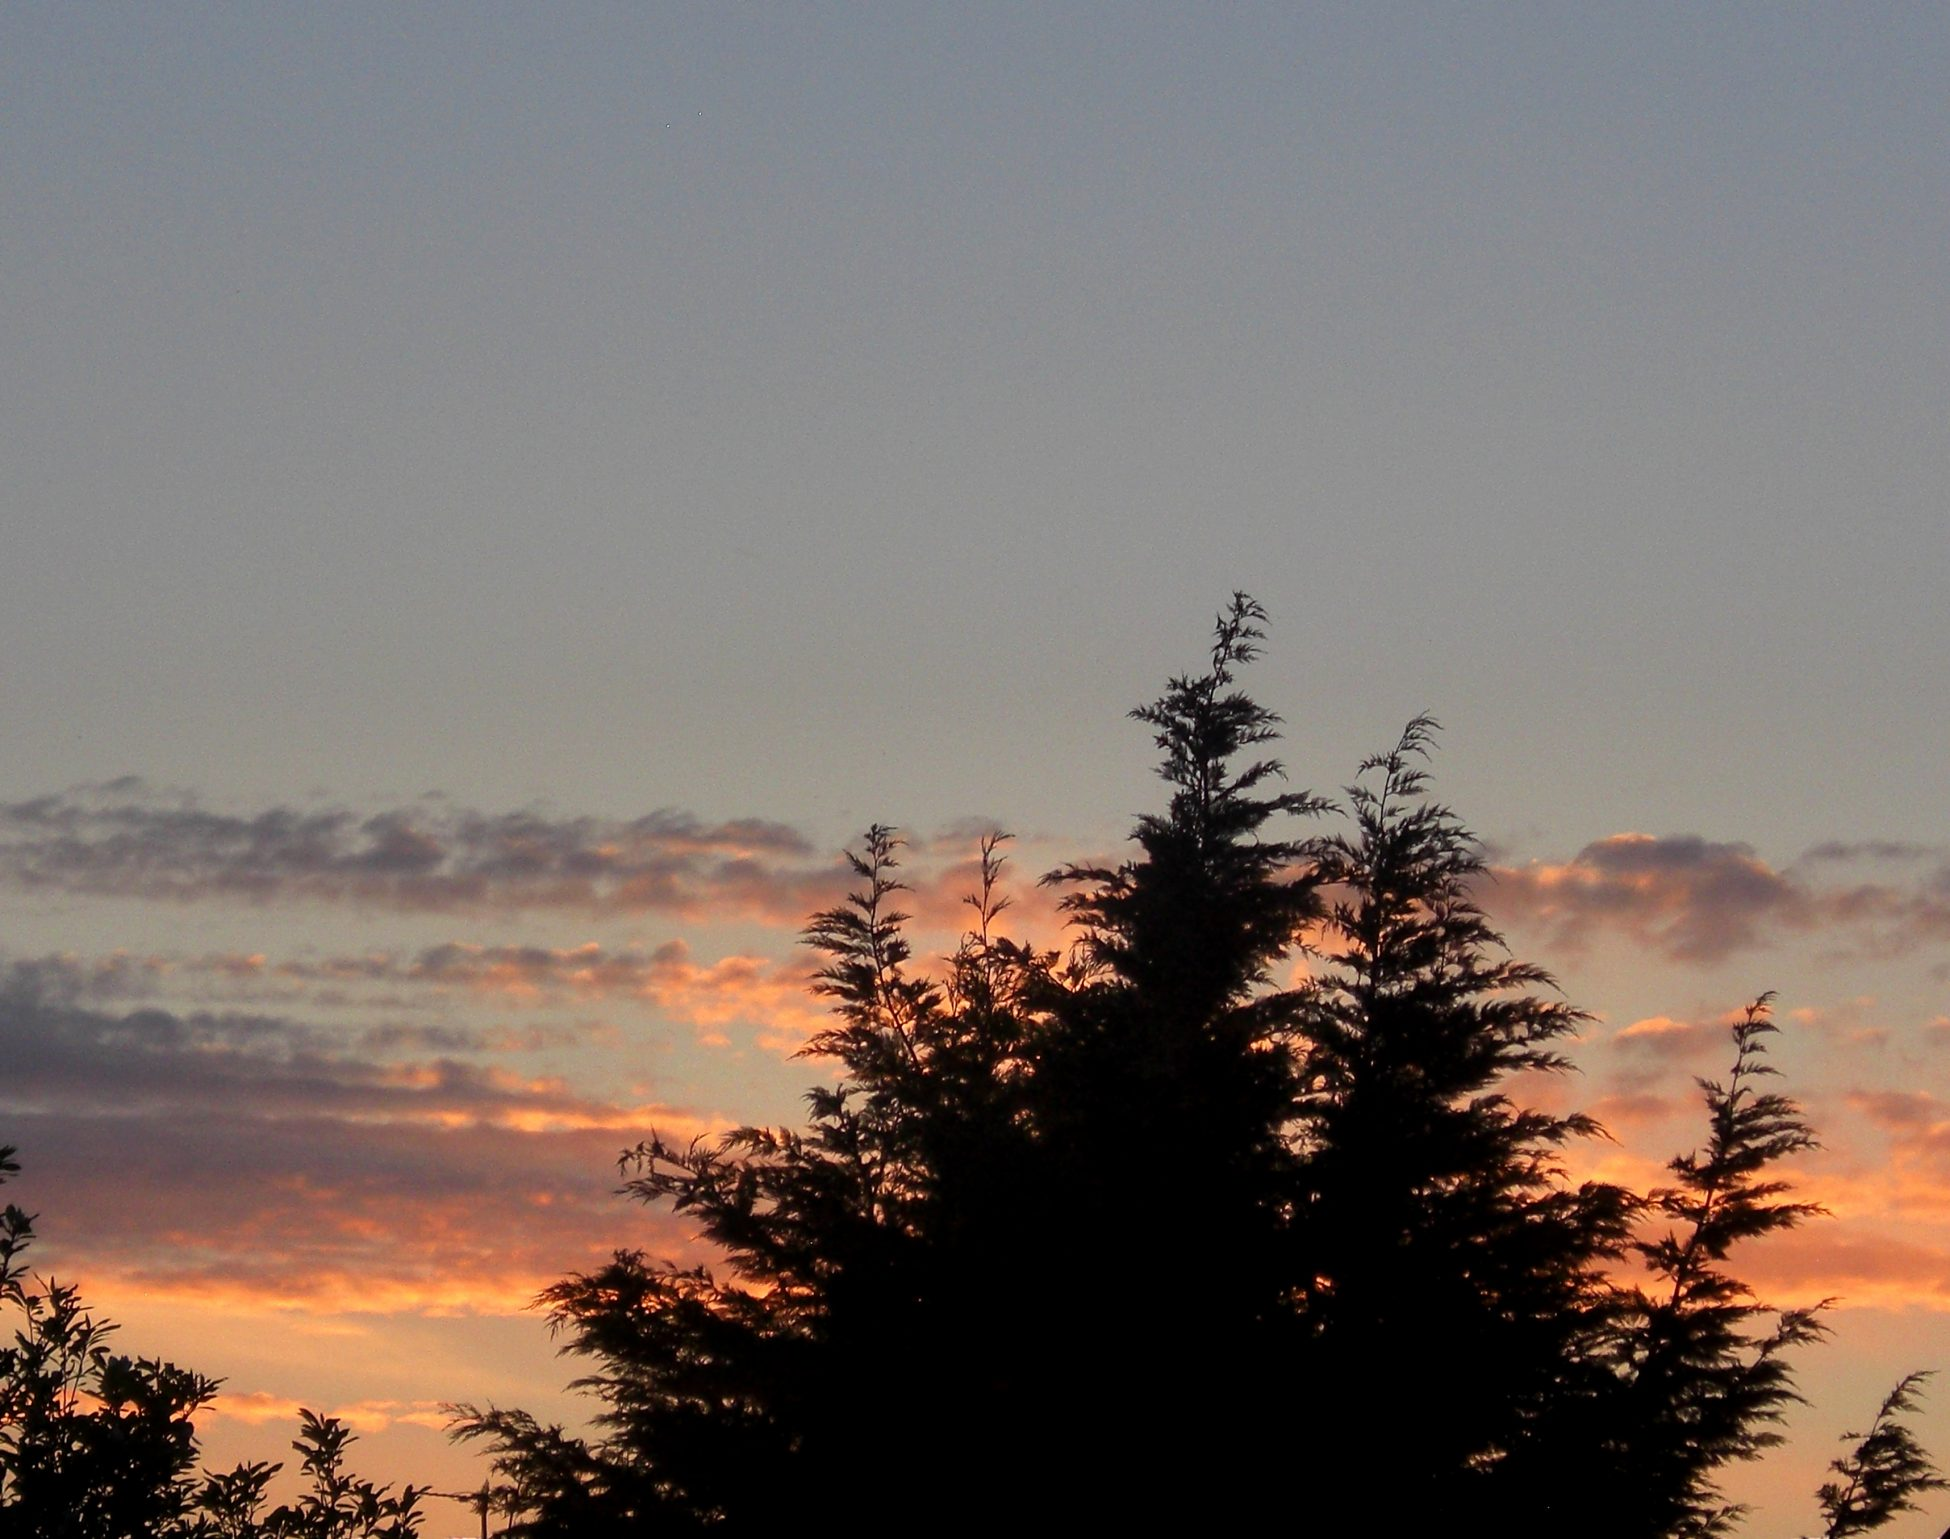 Photo of the sky with grey and orange clouds in the sky with some tree tops in silhouette